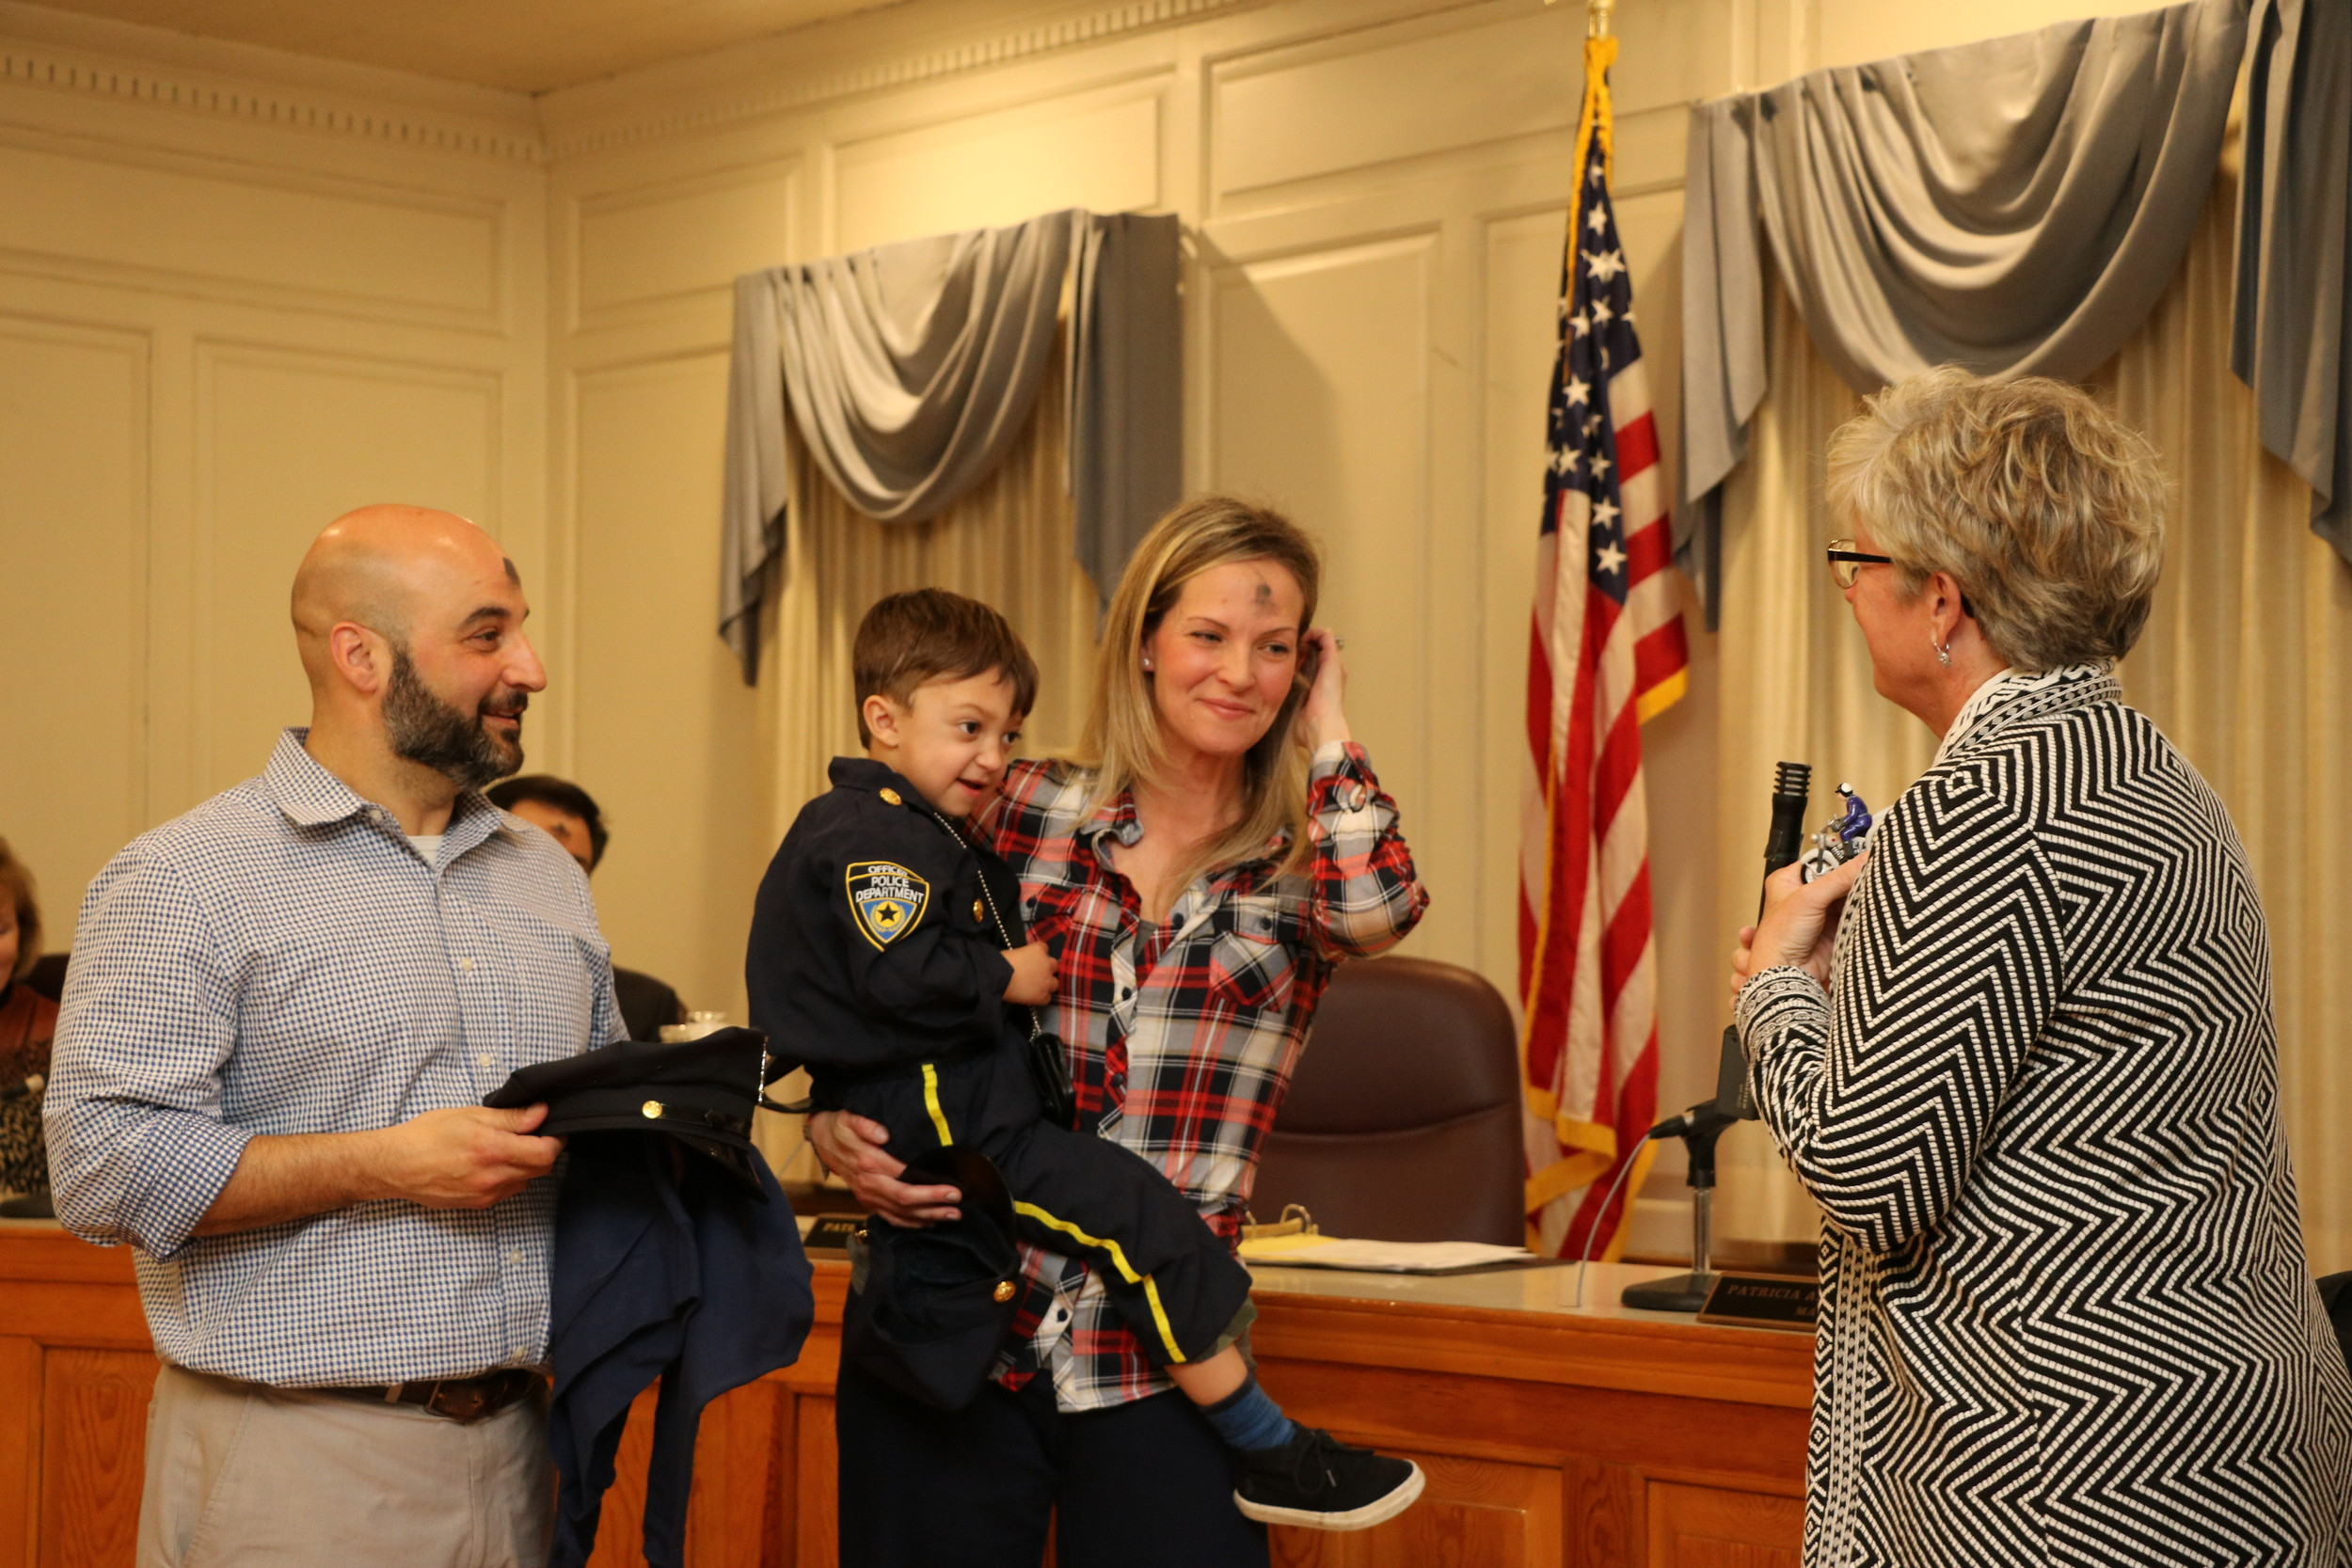 Mayor Patti Ann McDonald presented Malvernite Matteo Ventrudo, 4, with one of her husband's favorite police figurines. Joining them were Ventrudo's parents, Theresa and John Ventrudo.